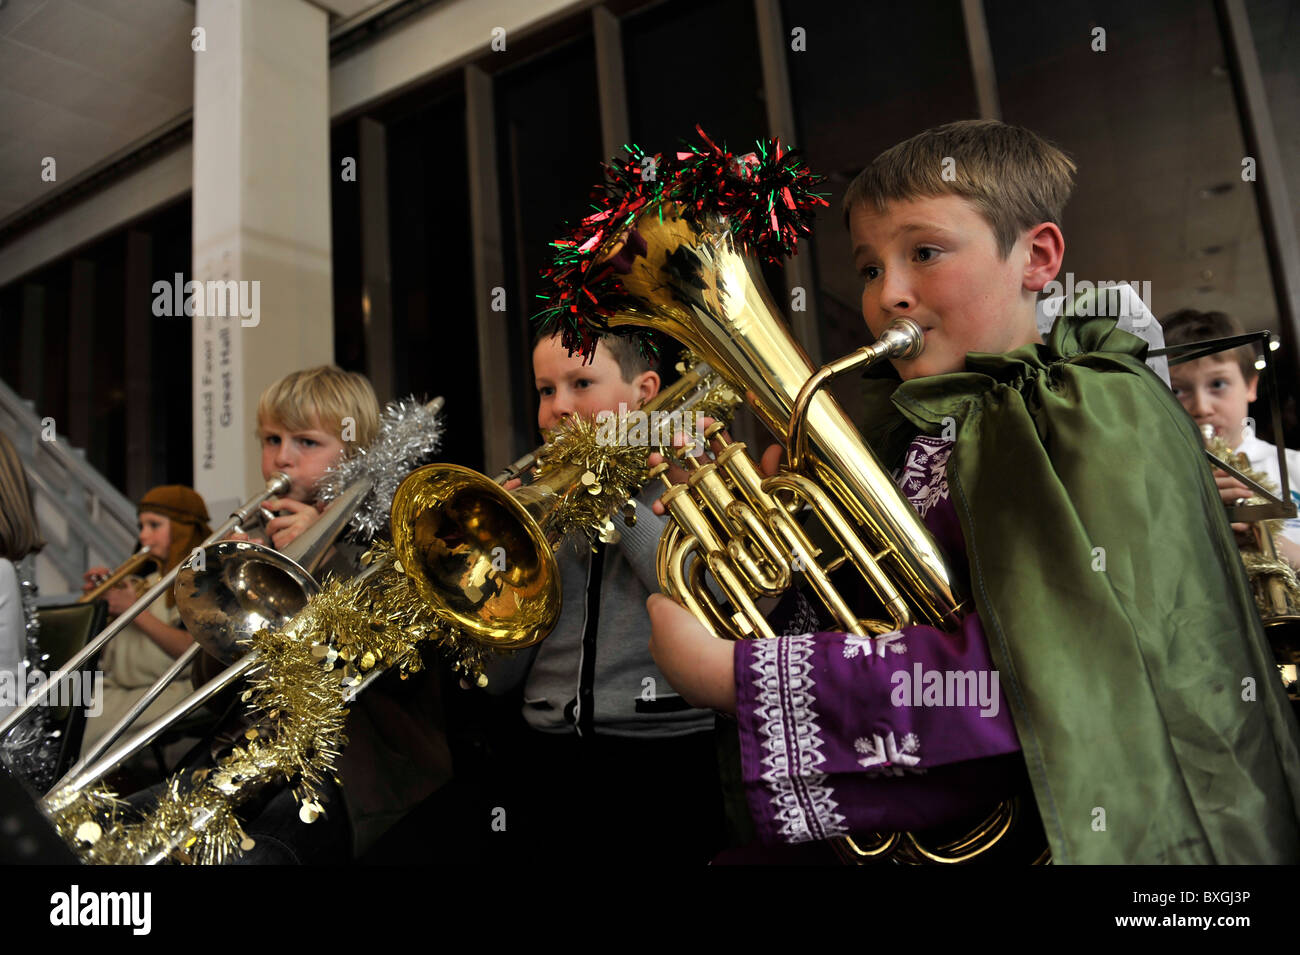 Children playing musical instruments in a primary school christmas nativity play, UK - Stock Image